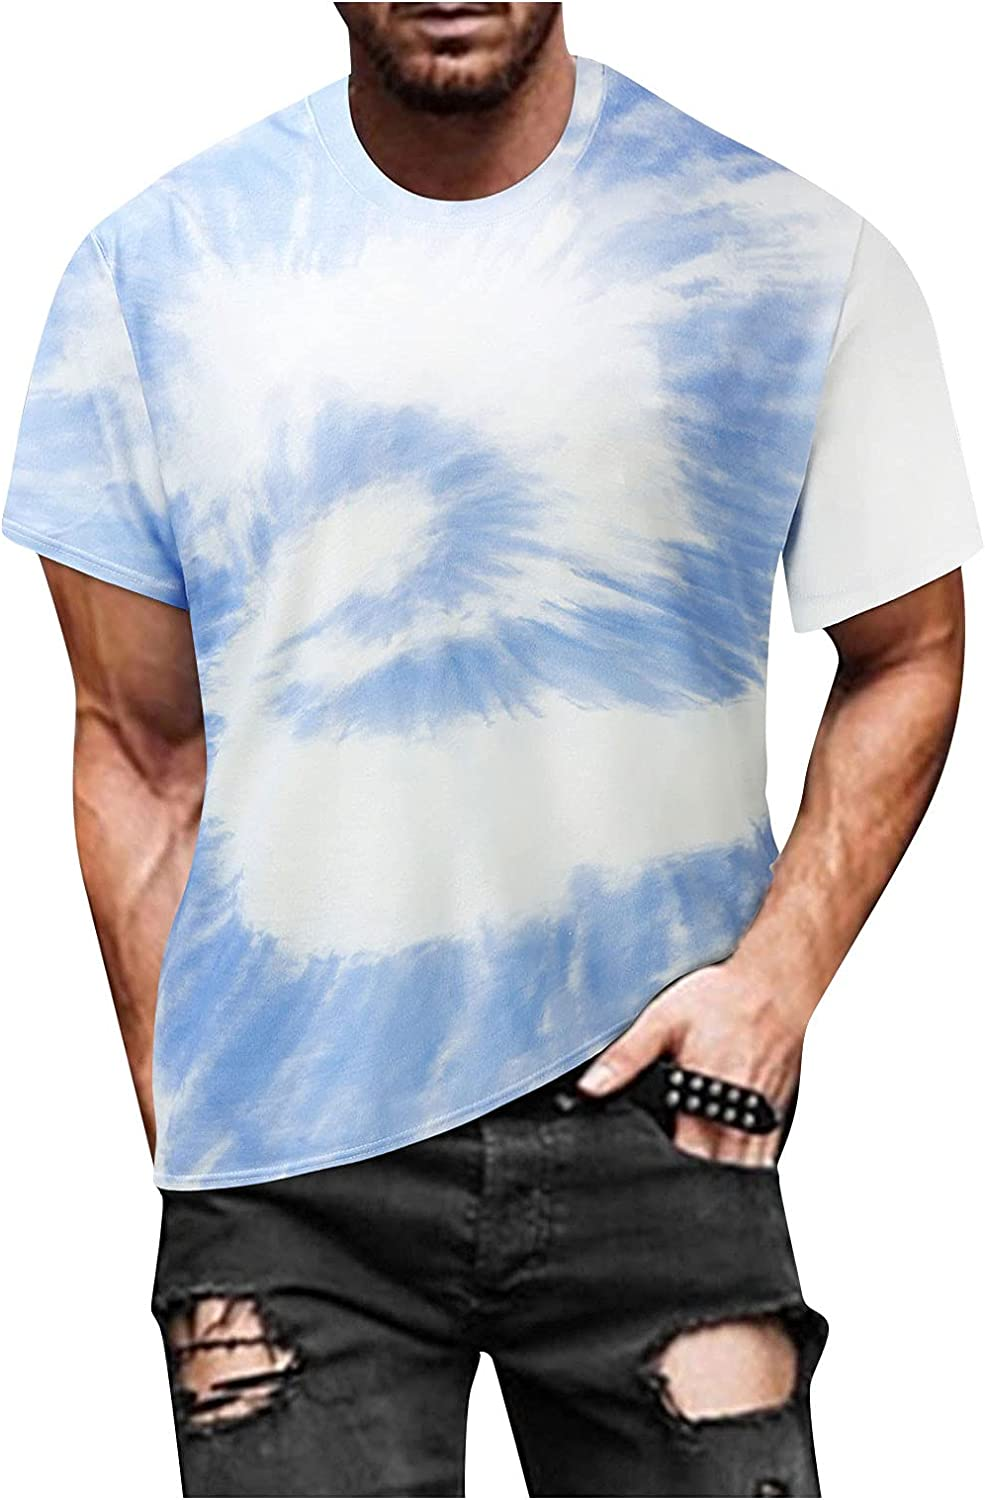 FUNEY Fashion Mens Hip Hop Tie-Dyed Hipster Colorful T Shirts Casual Crewneck Short Sleeve Vintage Printed Tee Tops Blouse